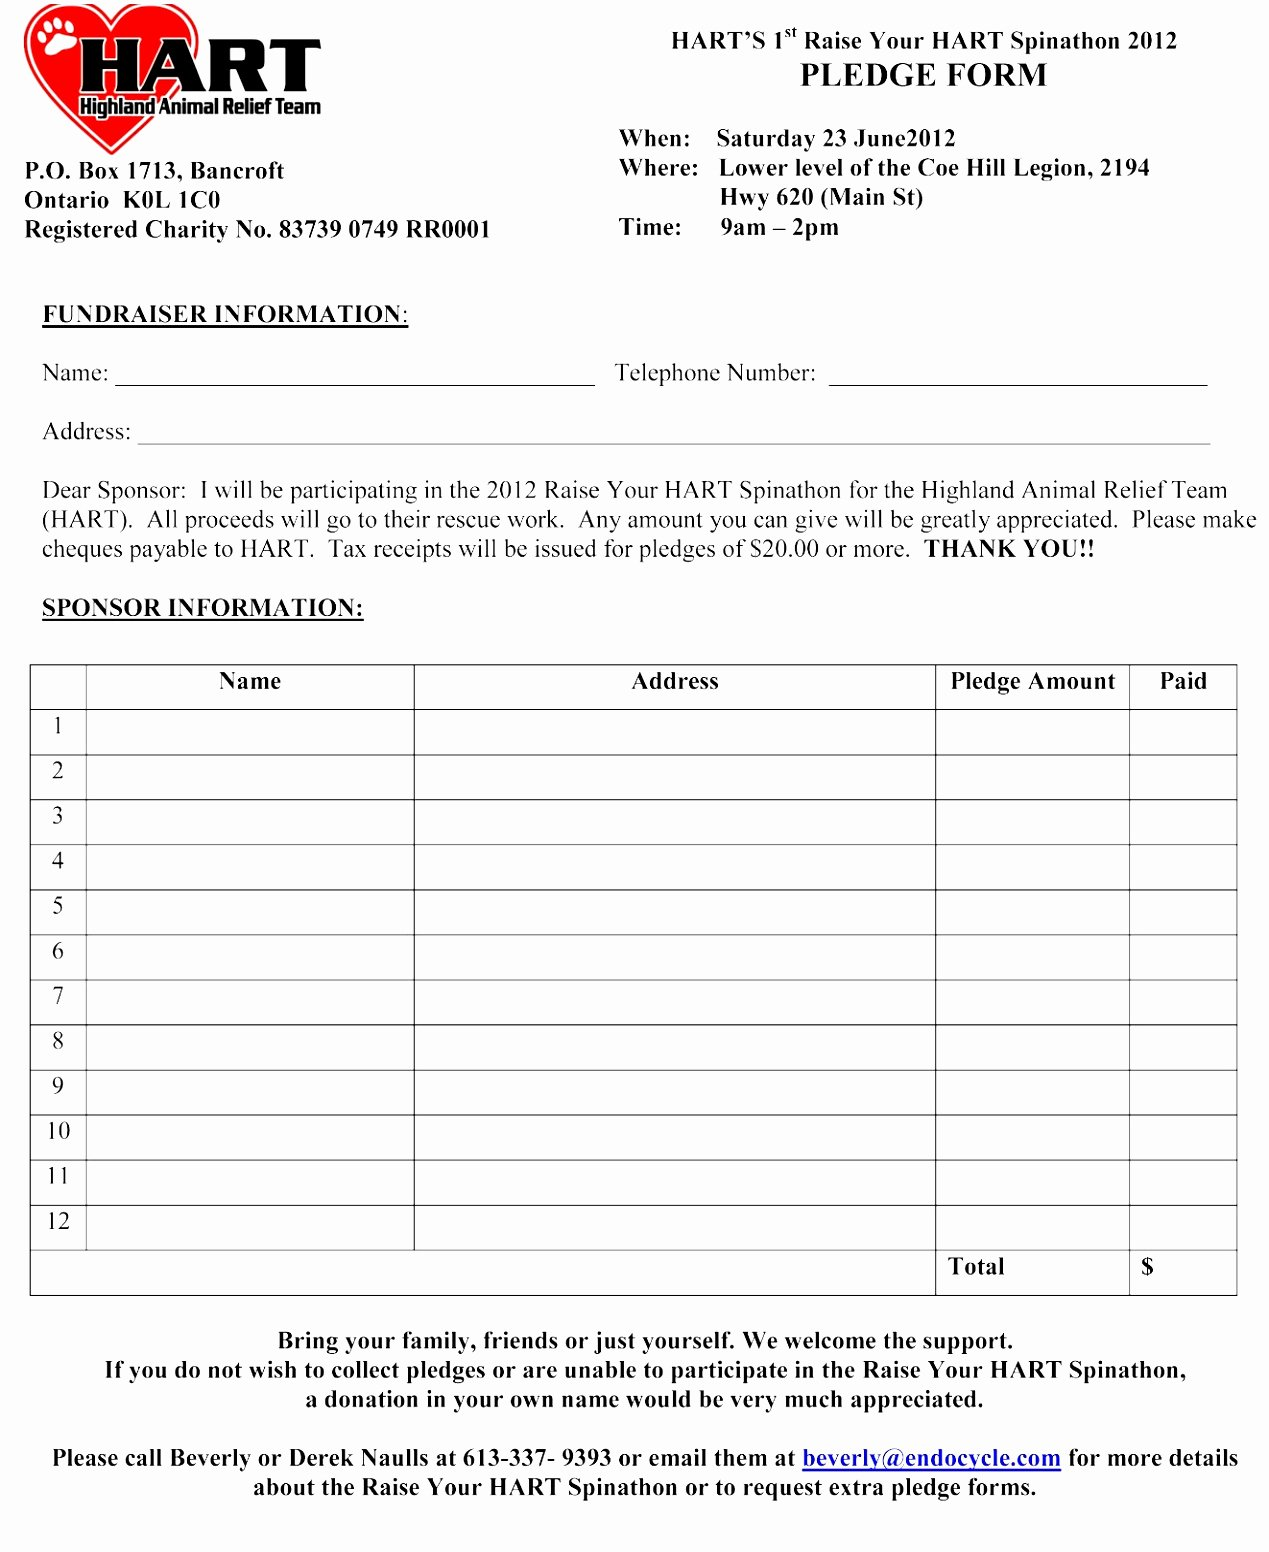 Fundraiser form Template Free Beautiful Fundraiser form Template Free – Versatolelive